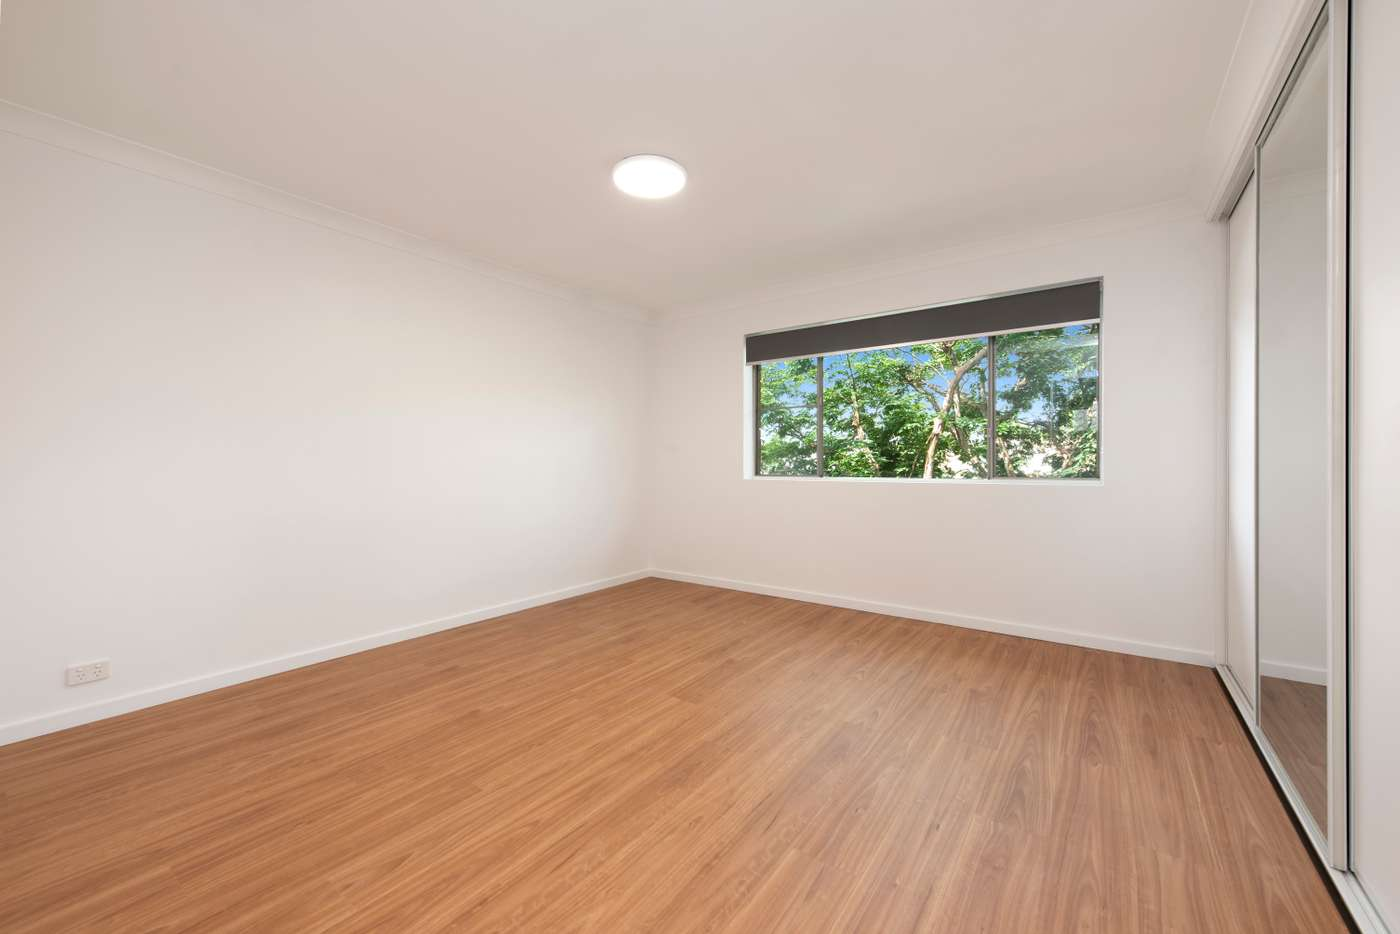 Fifth view of Homely unit listing, 9/179 Sir Fred Schonell Drive, St Lucia QLD 4067